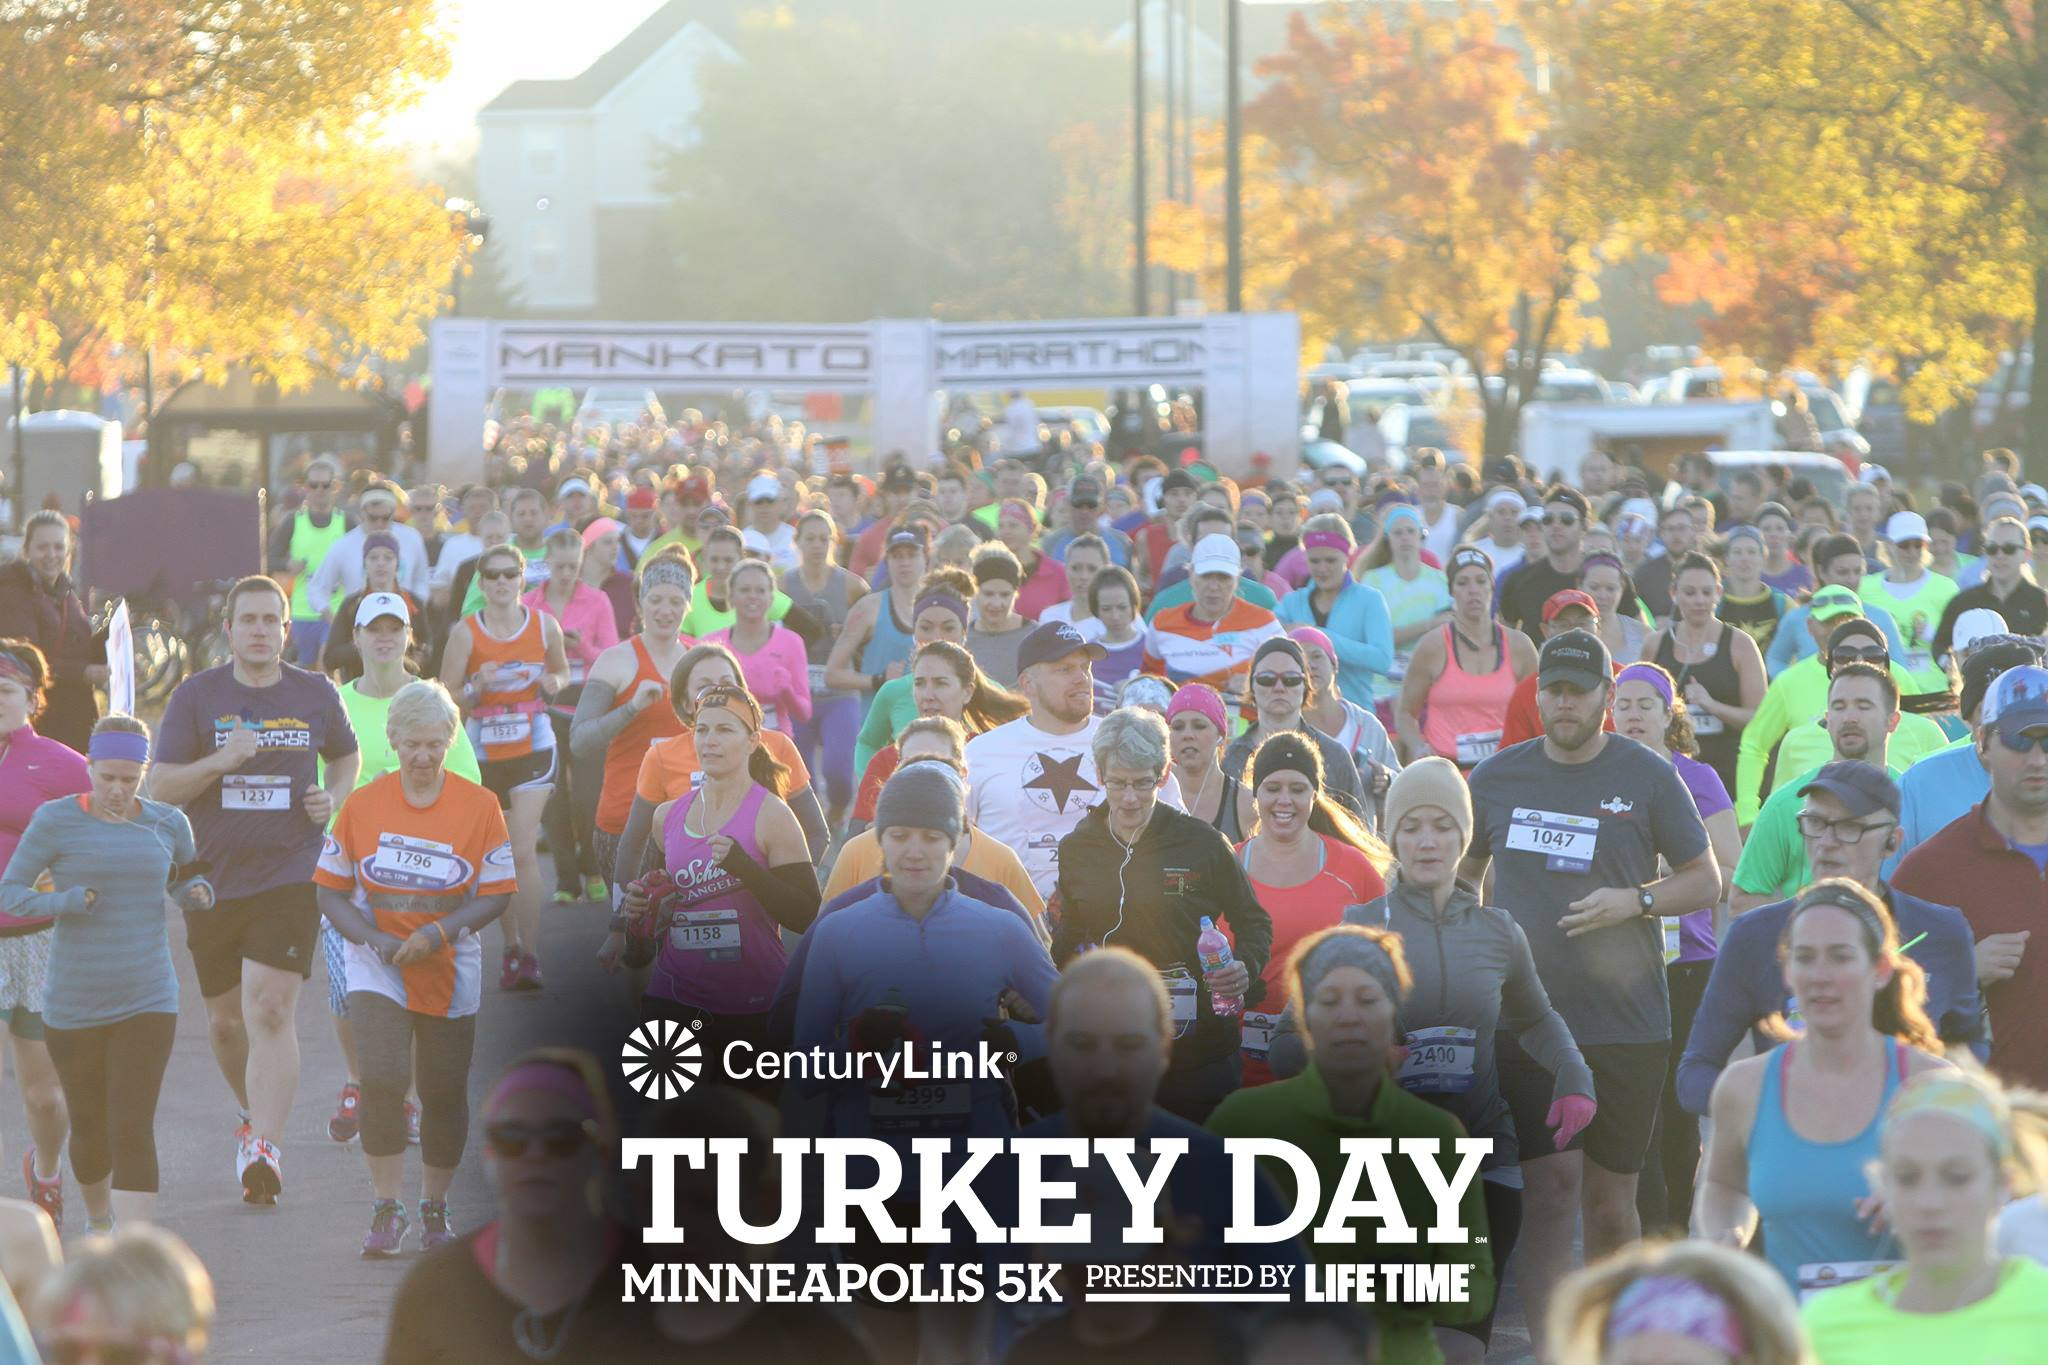 Turkey Day Minneapolis 5k